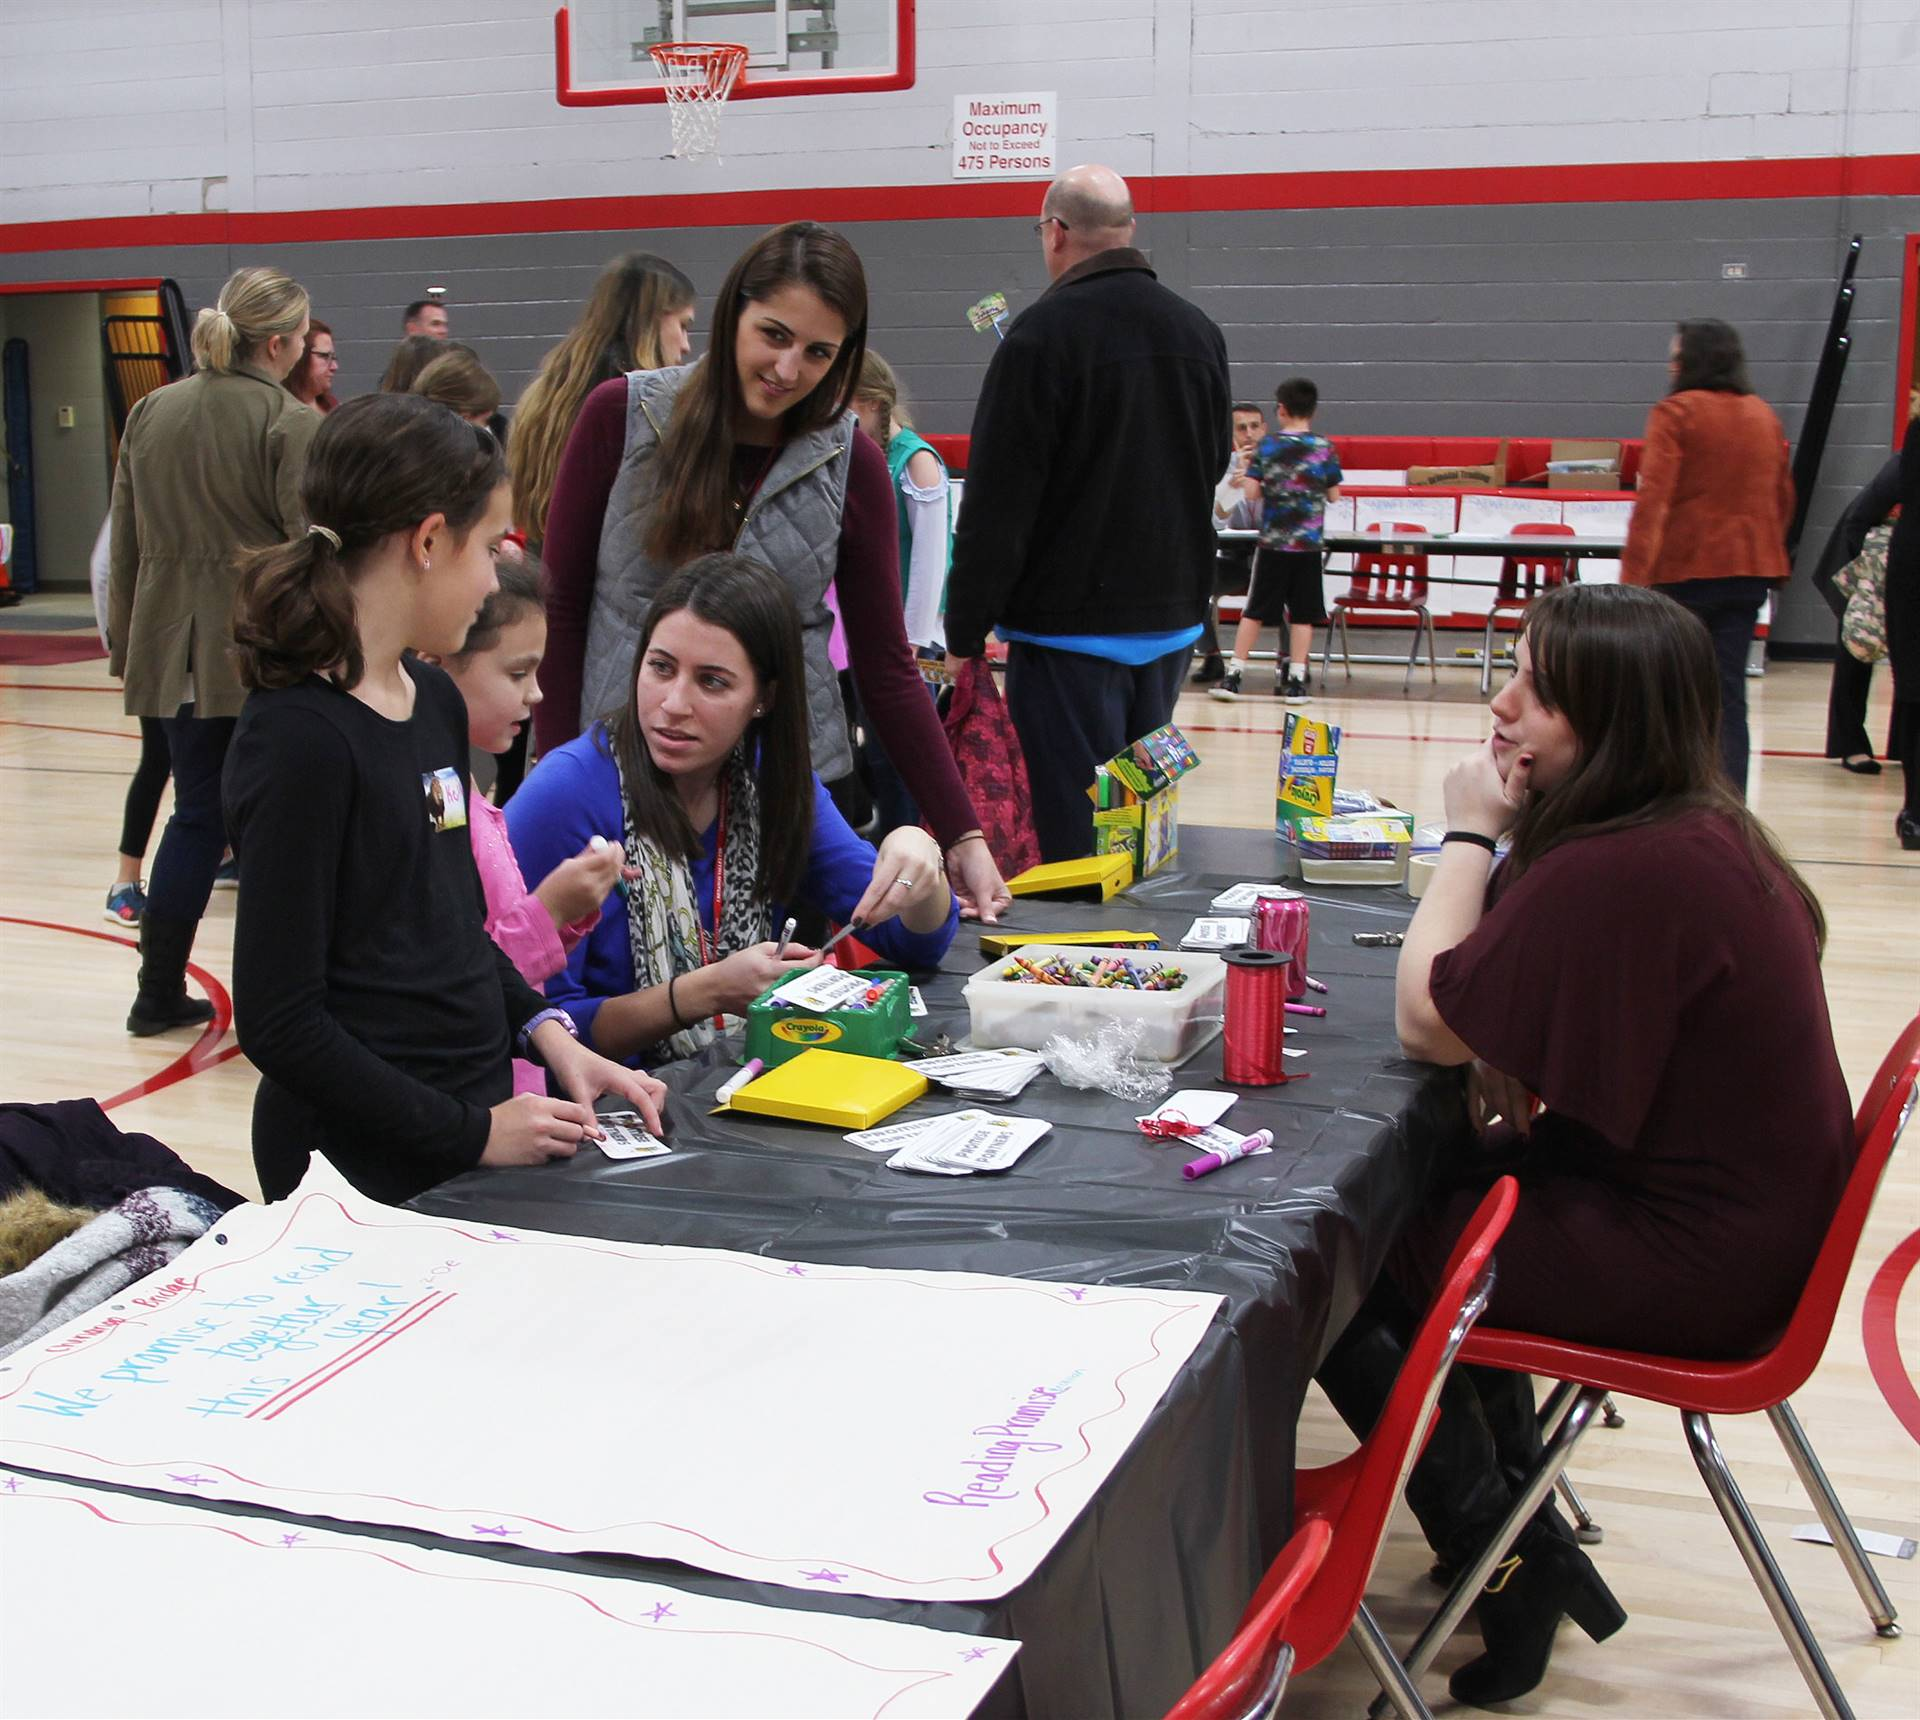 students and teachers at activity table